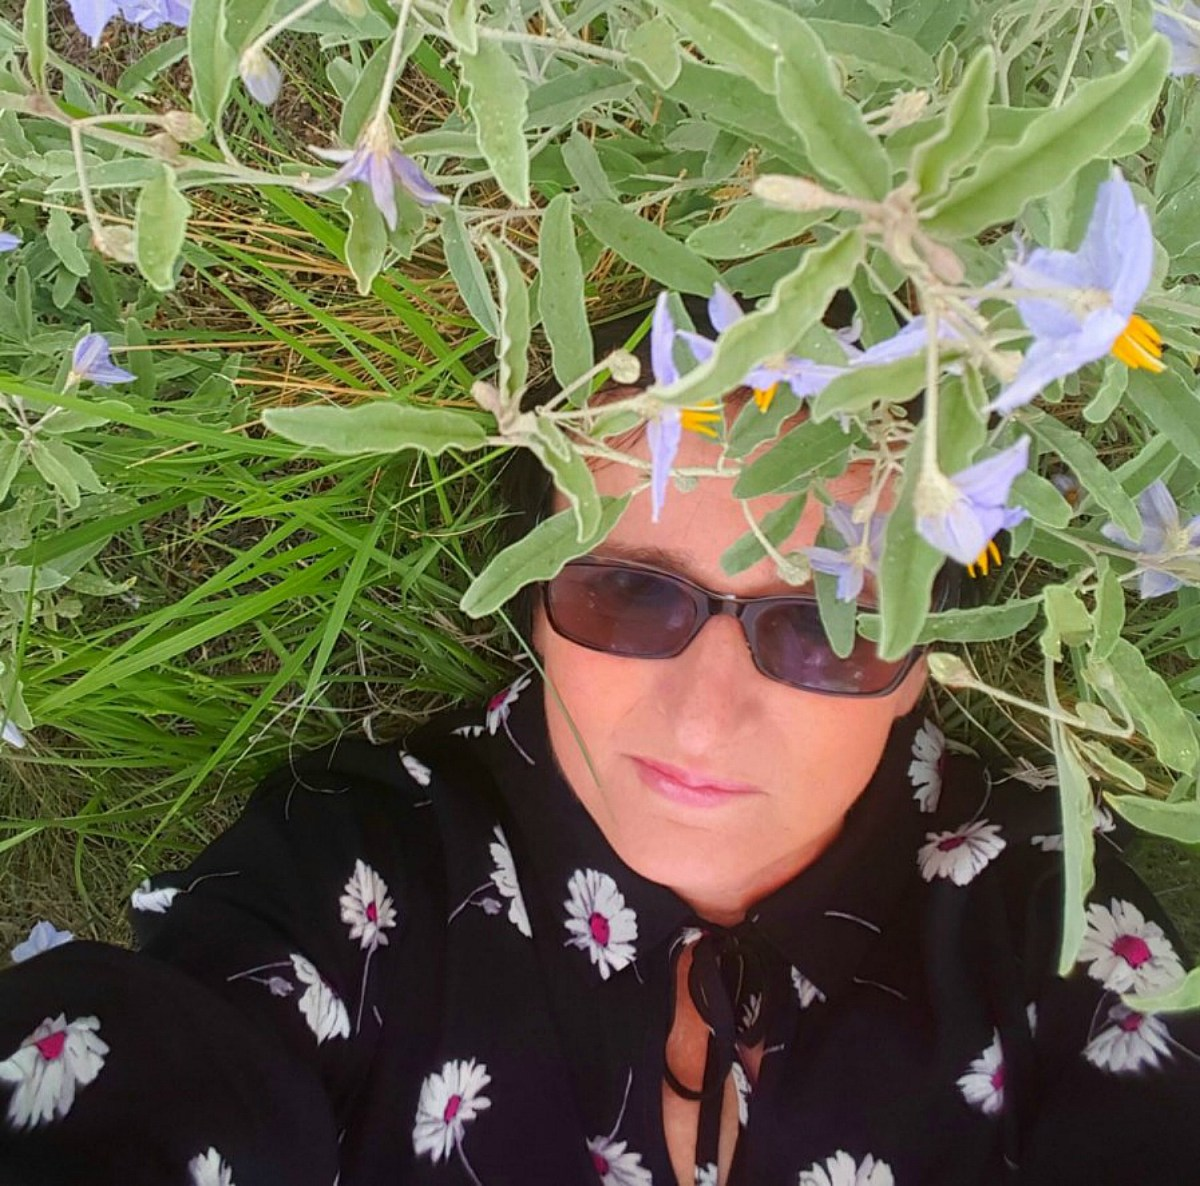 Living and traveling with cancer. Meadow in Arizona.